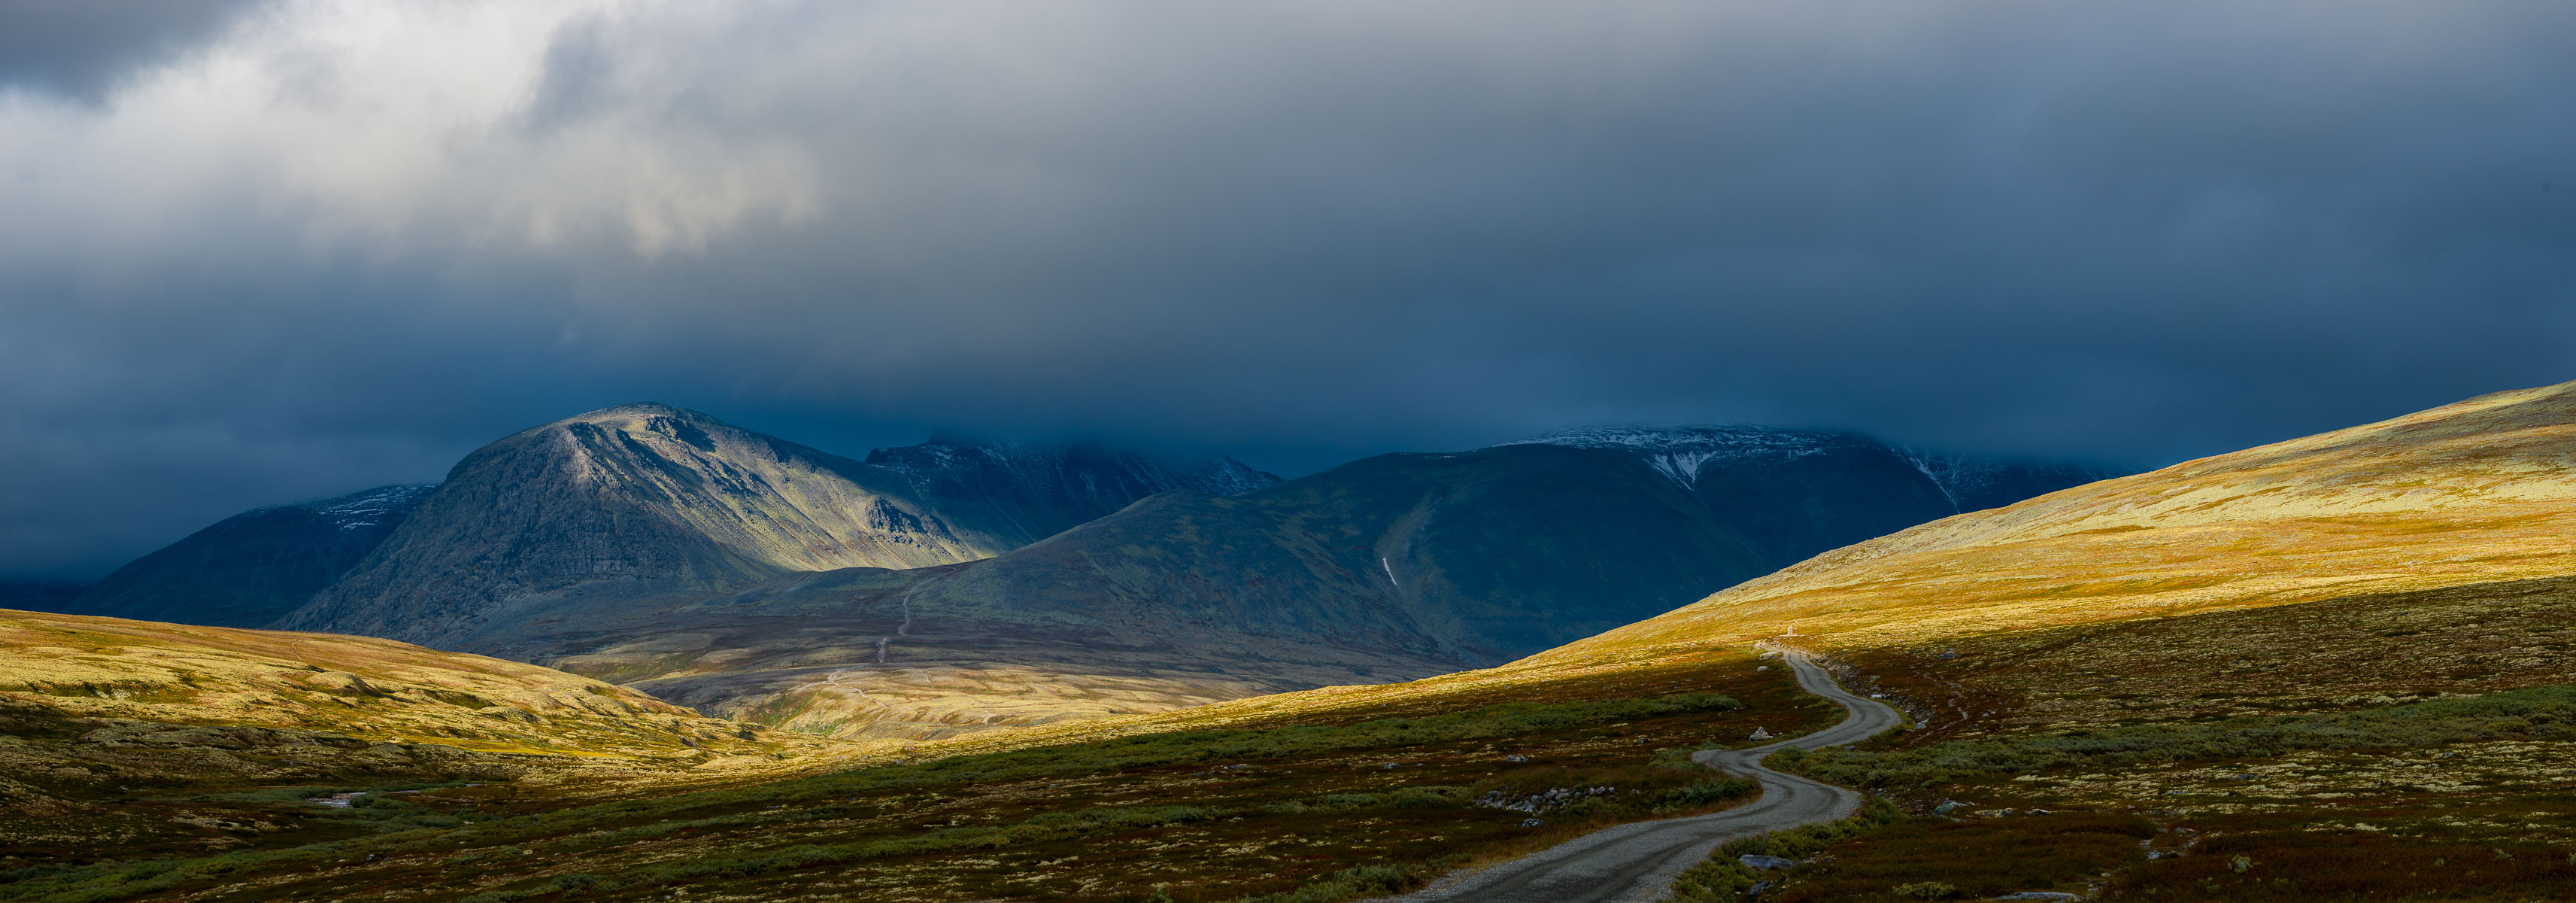 The road to Rondane National Park